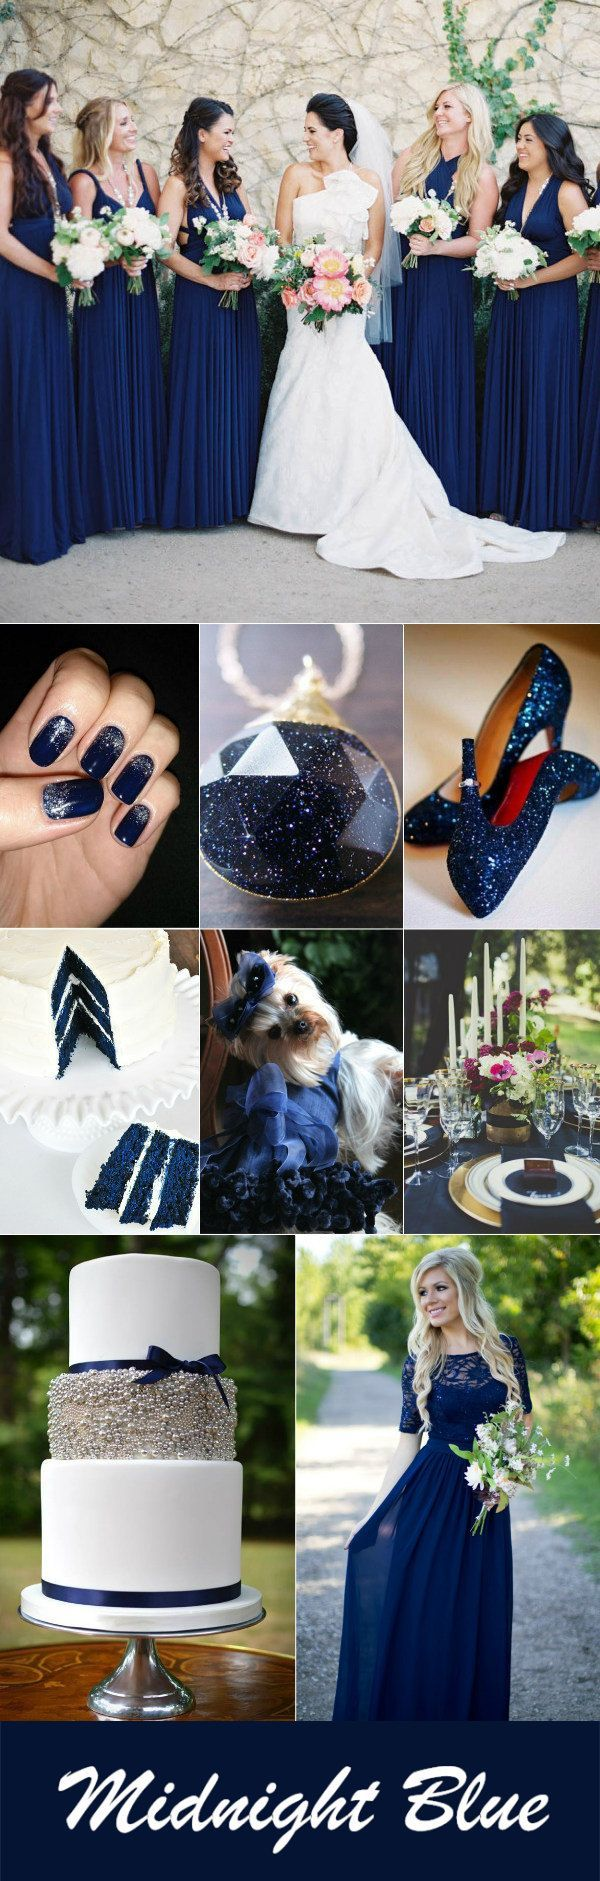 The 25+ best Midnight blue color ideas on Pinterest | Midnight ...